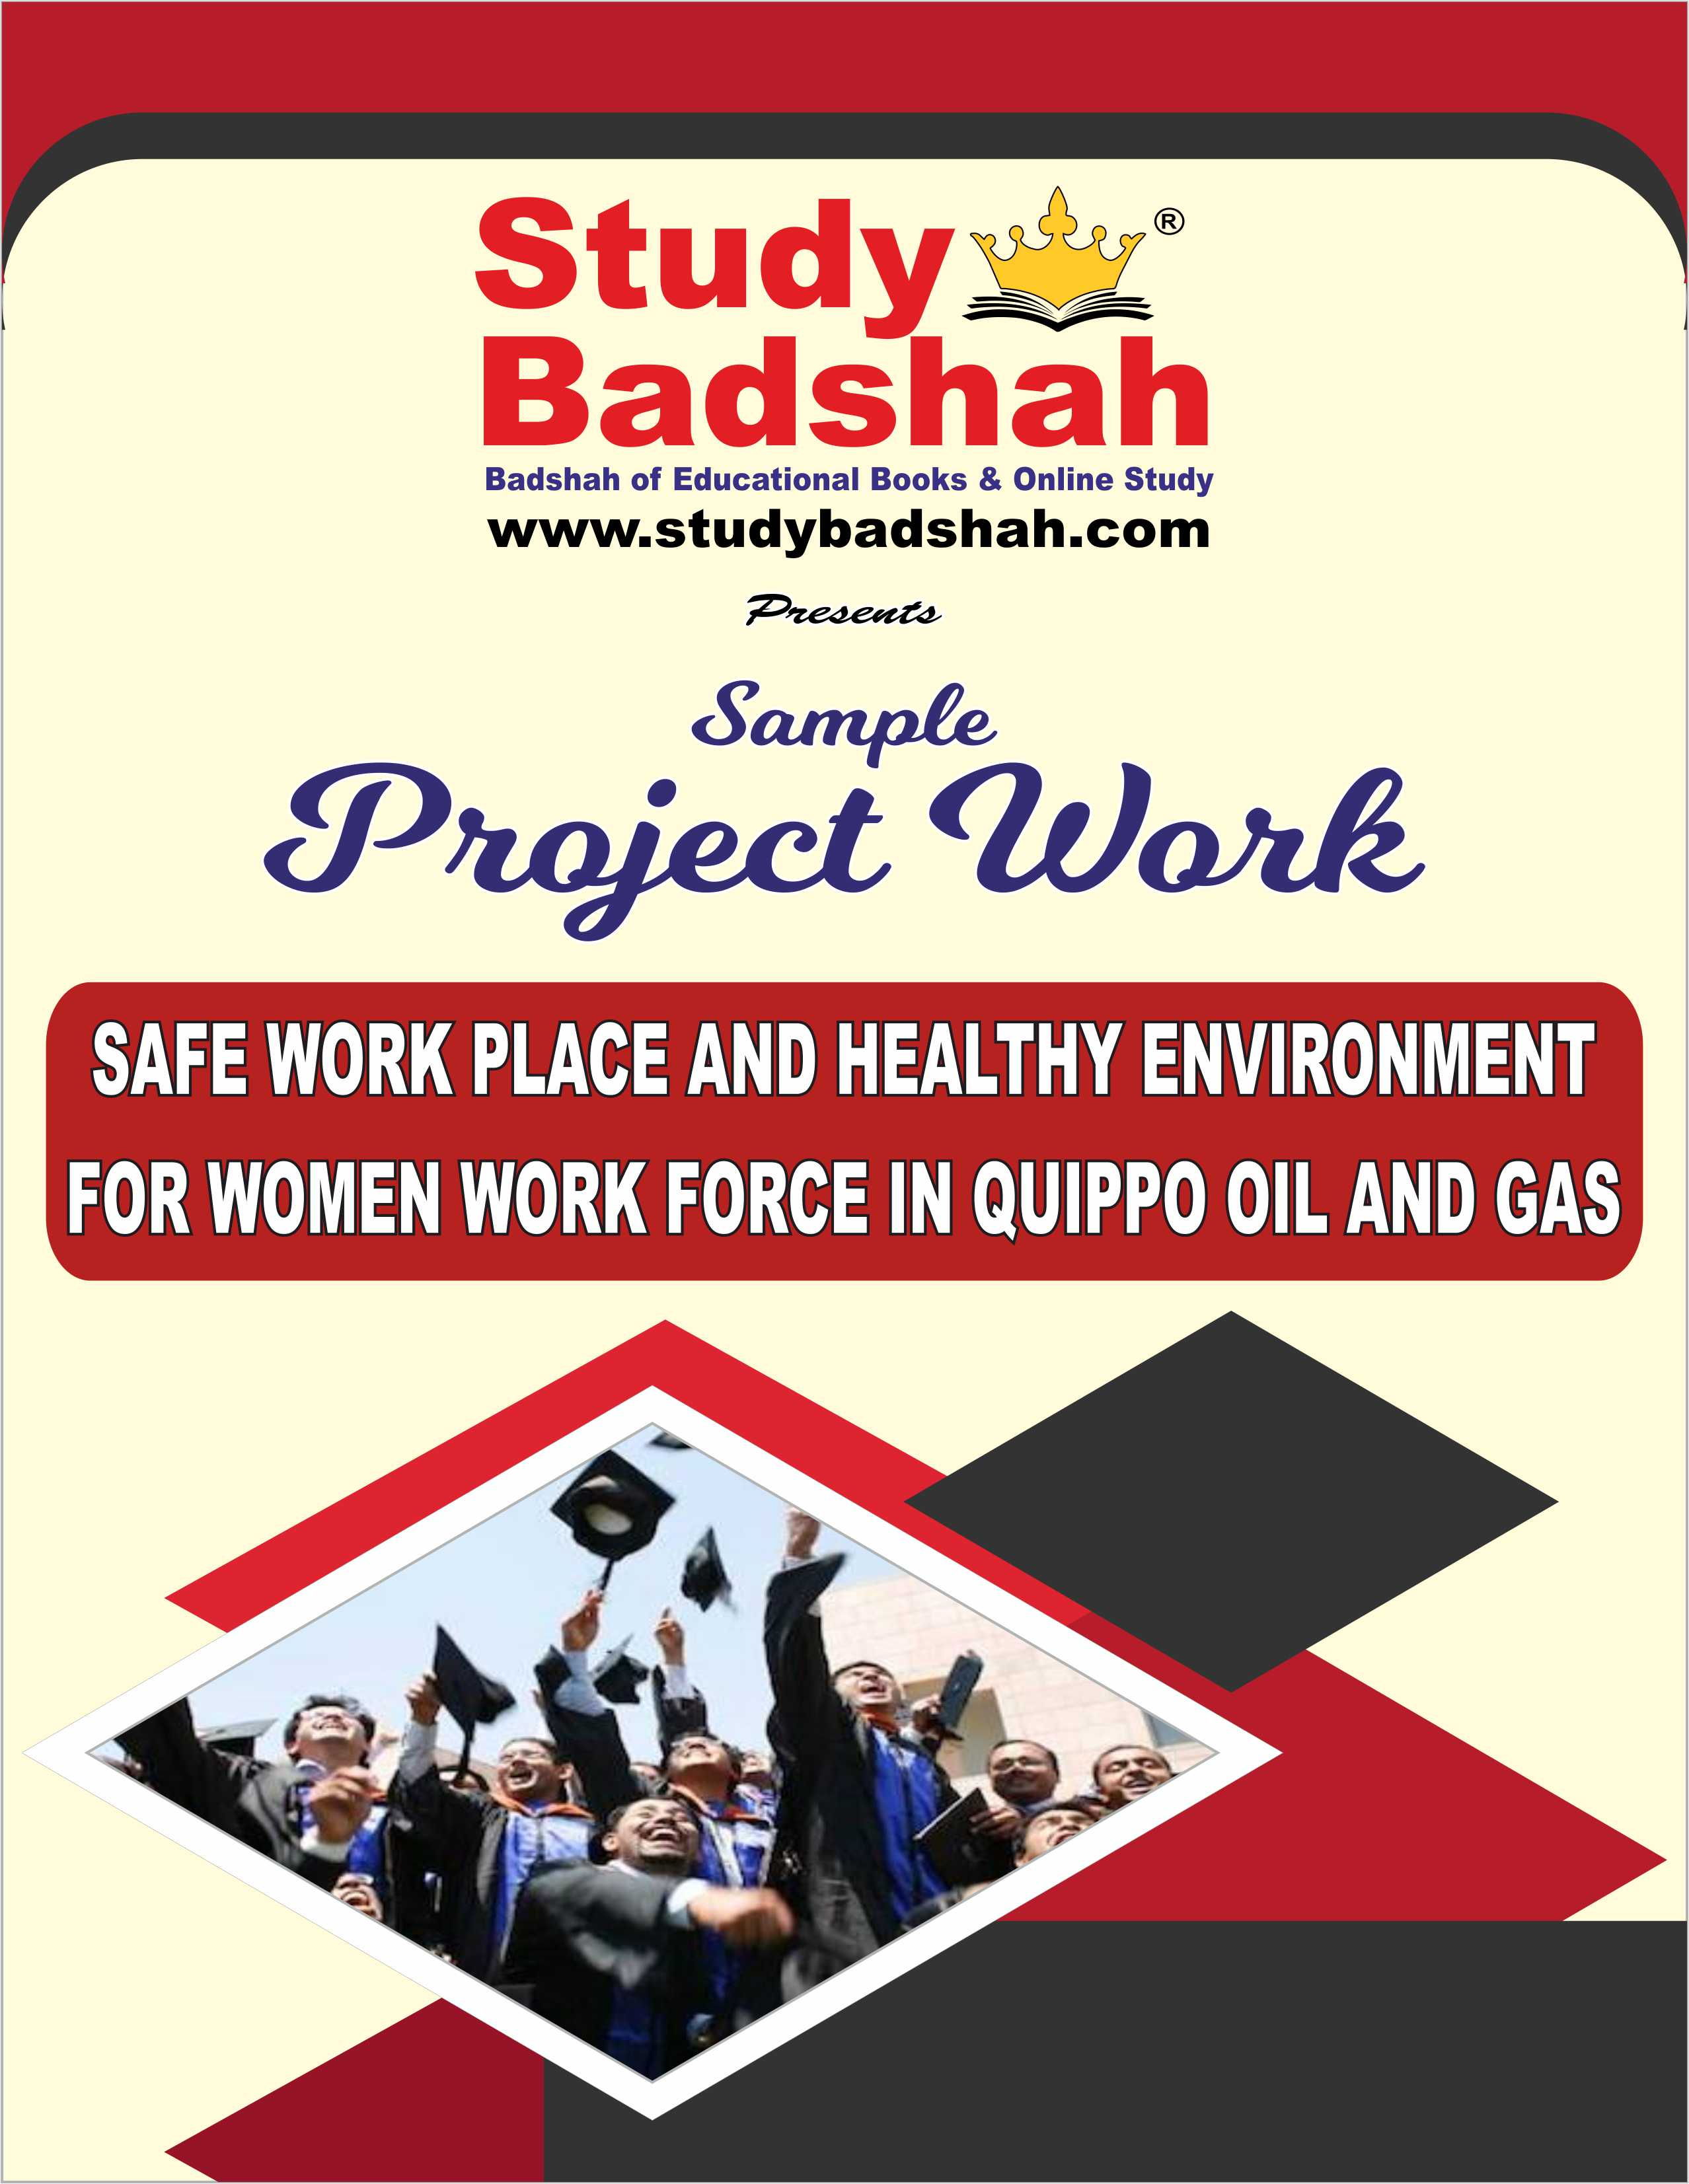 SAFE WORK PLACE & HEALTHY ENVIRONMENT FOR WOMEN WORK